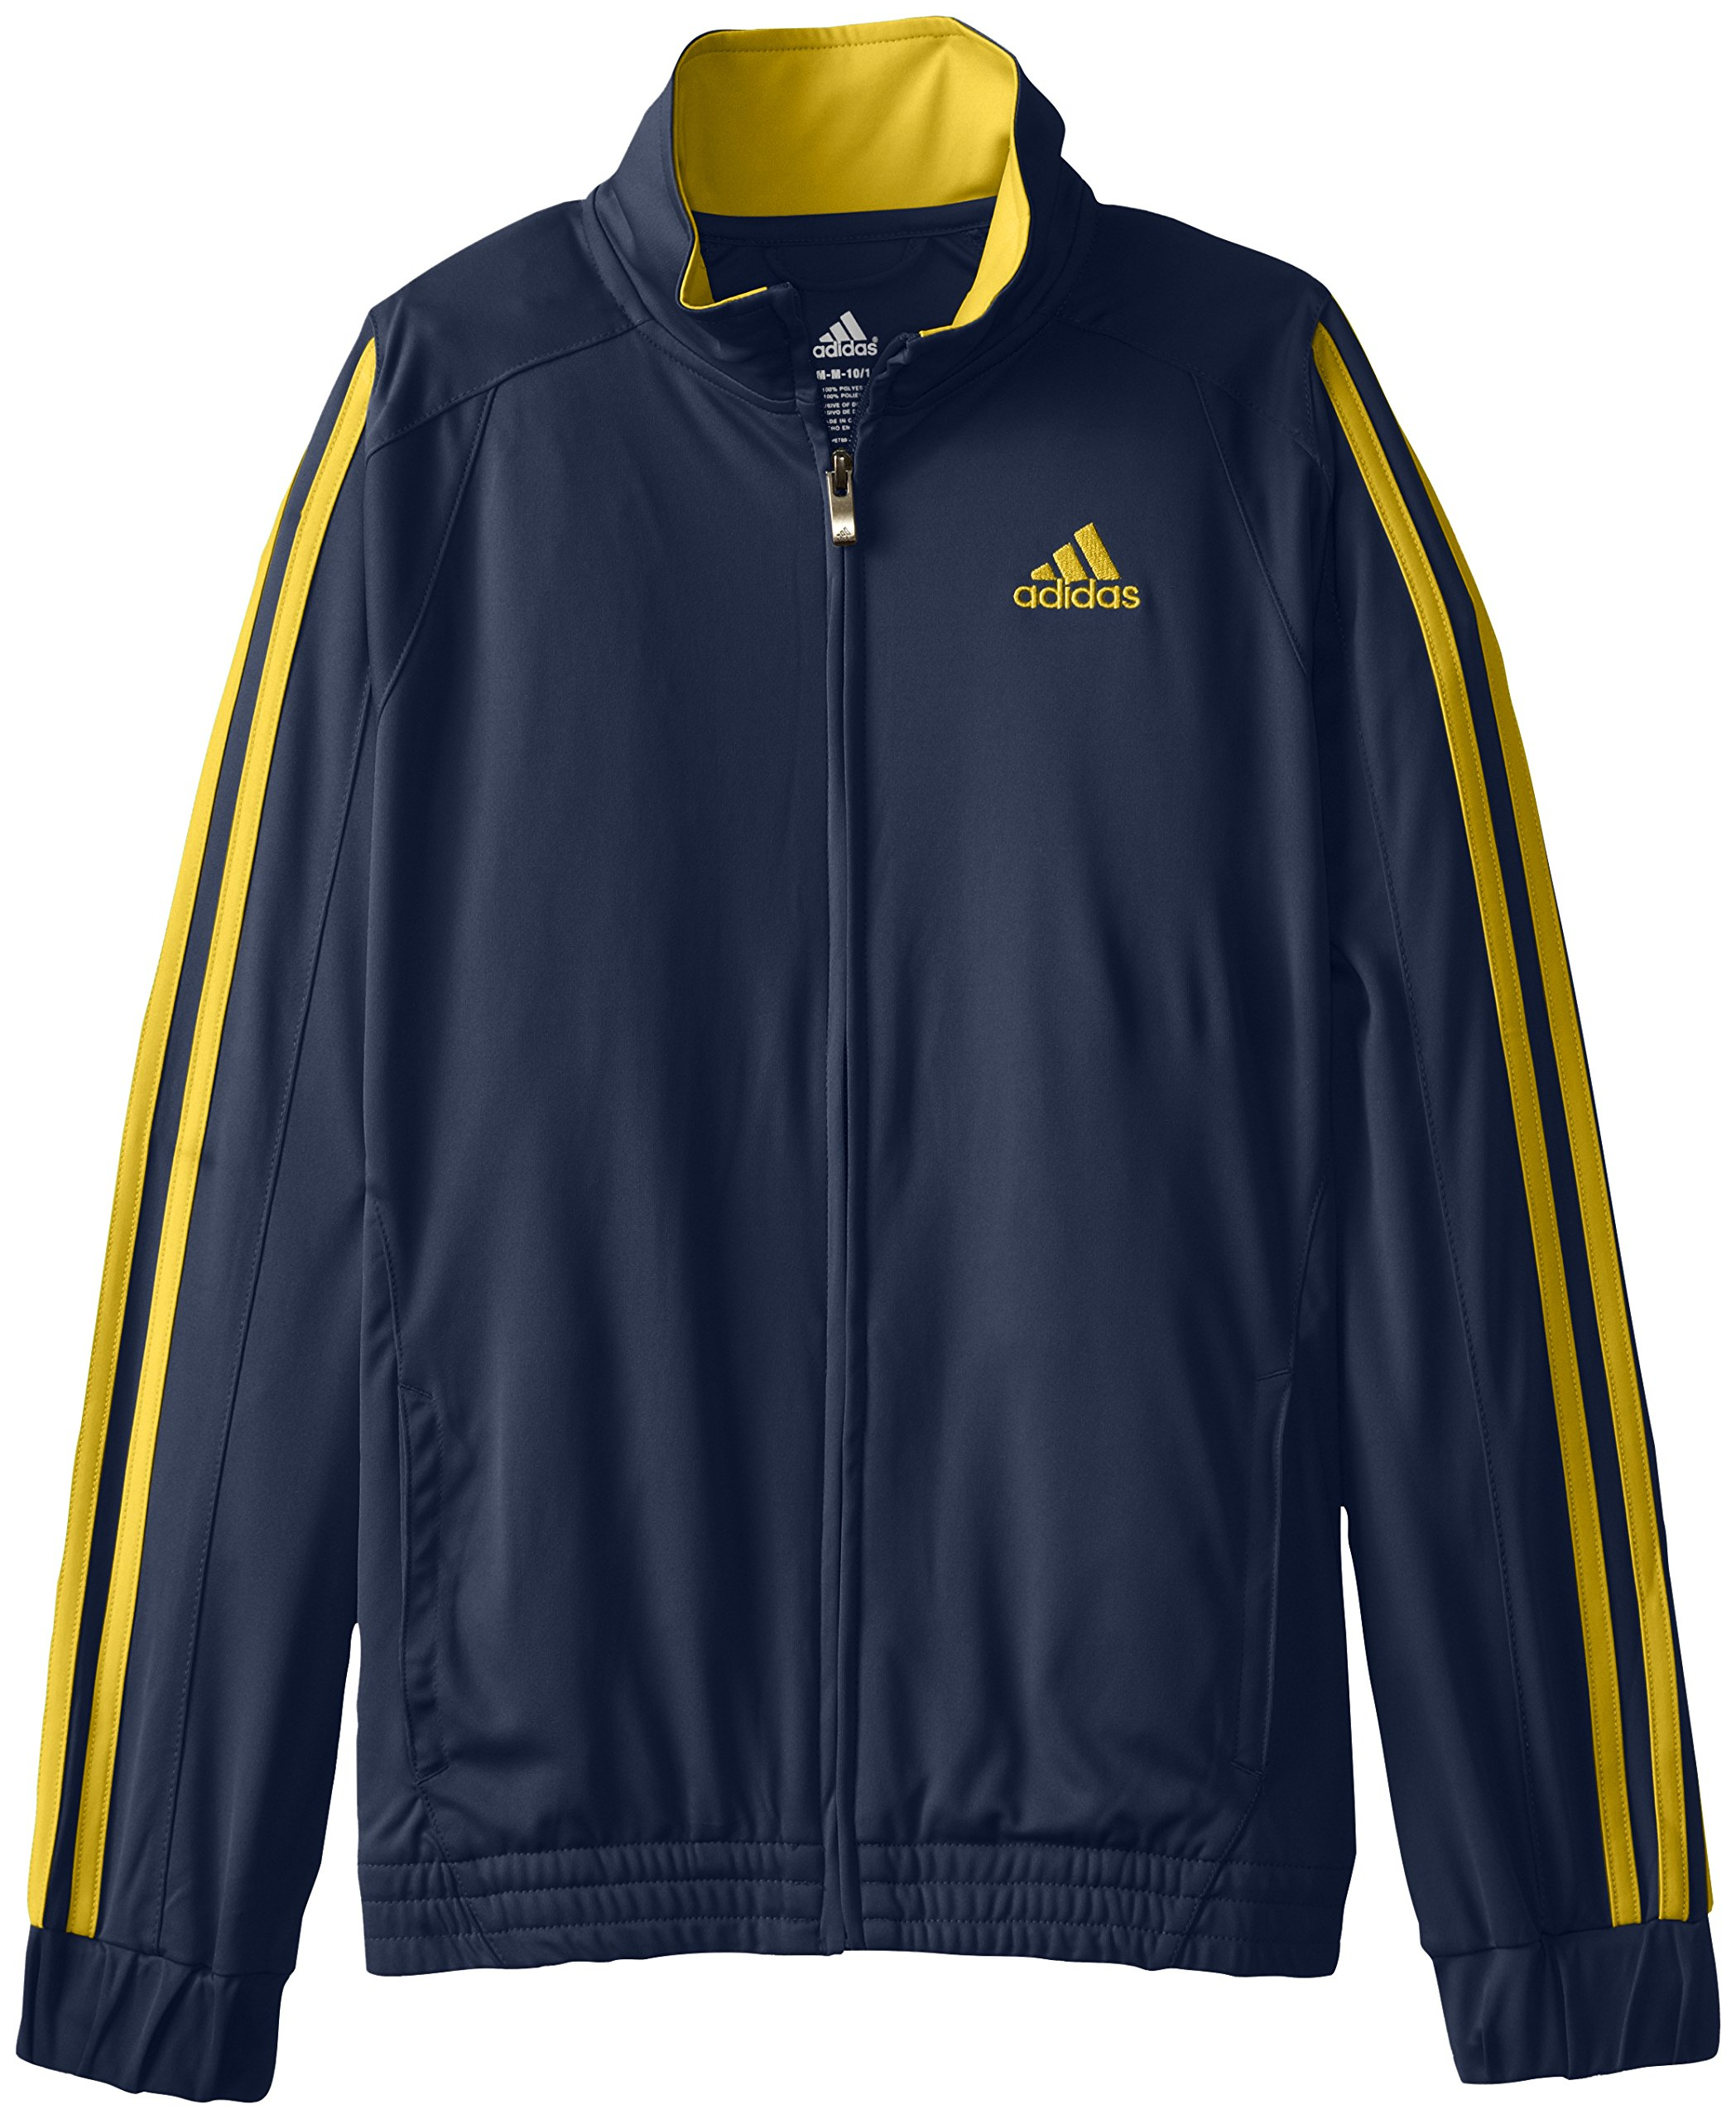 adidas Boys' Big' Loose Core F Z Jacket, Navy/Yellow, Large